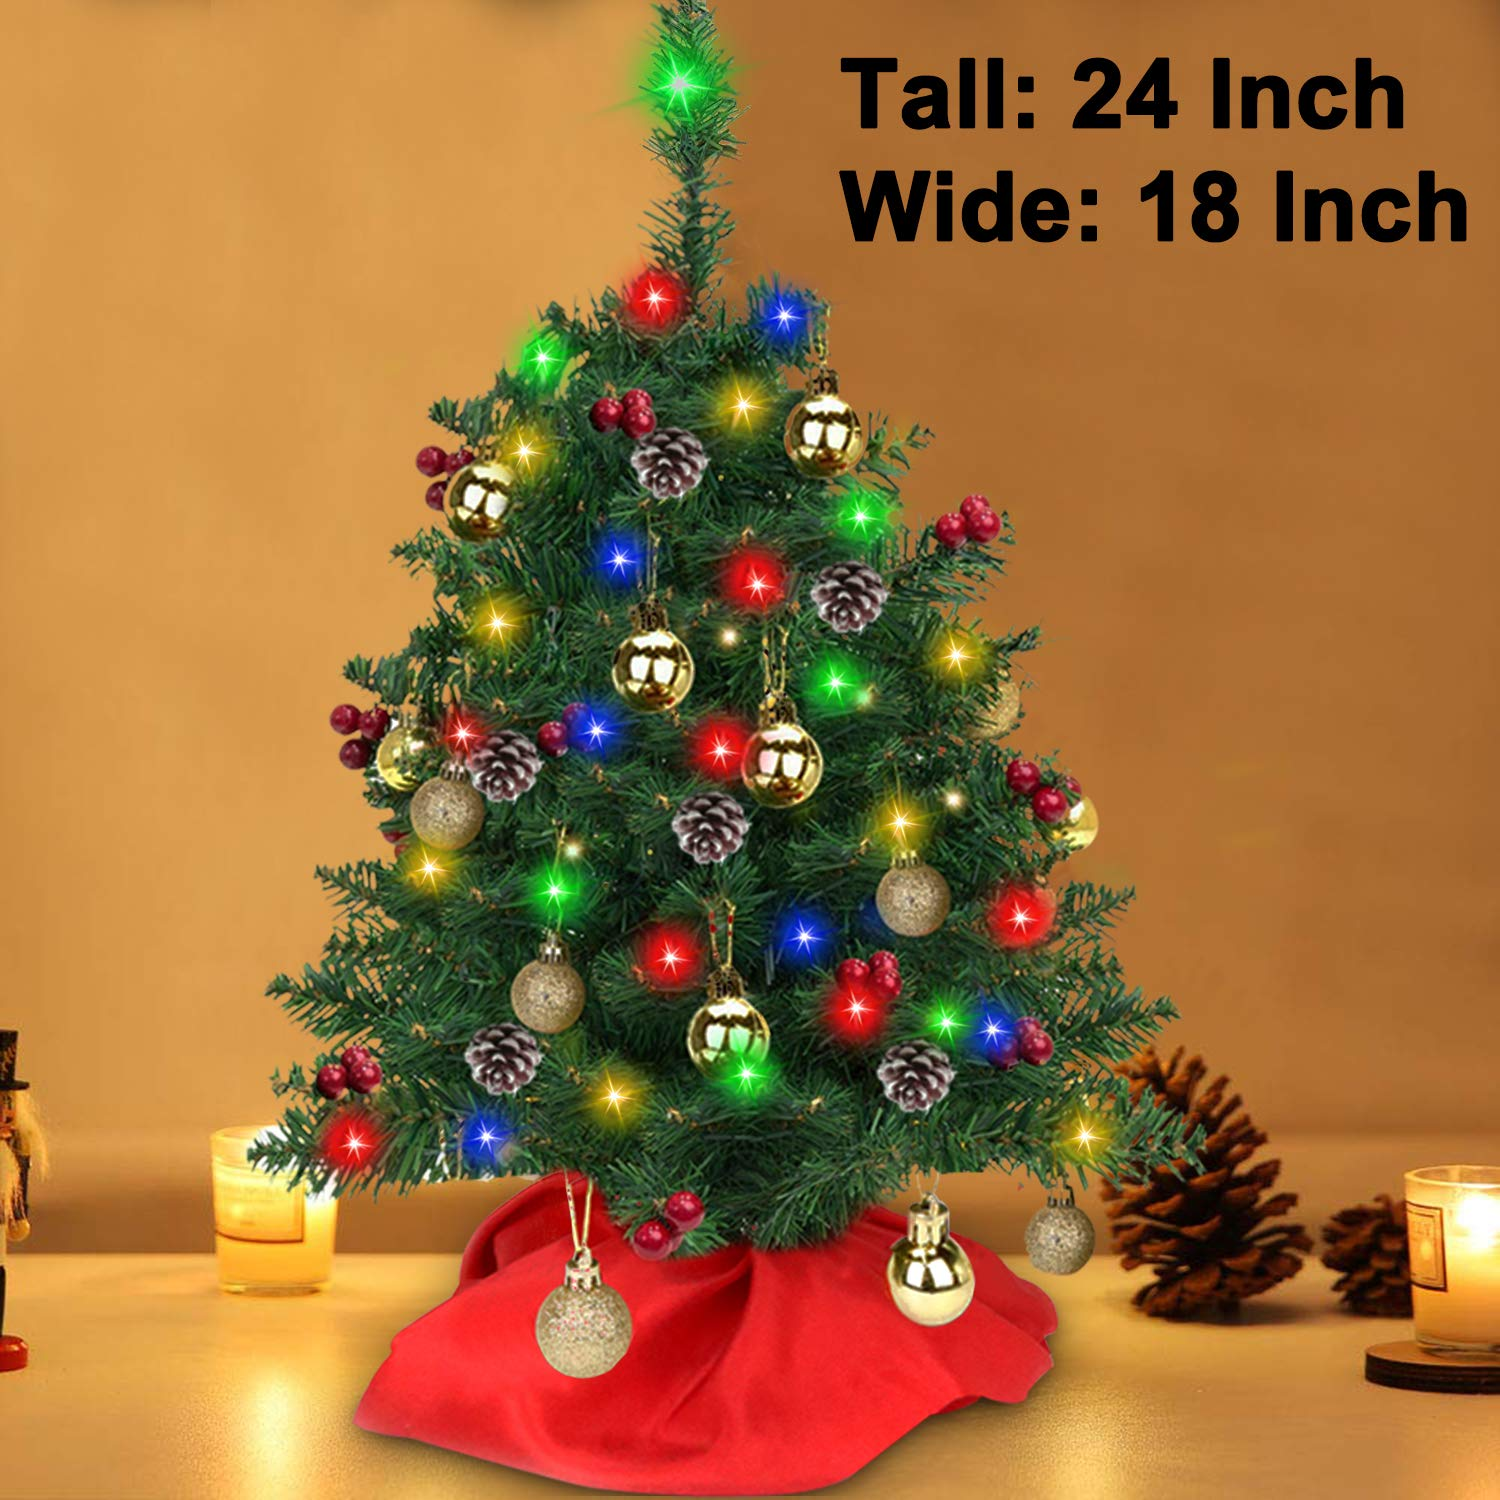 Tabletop Christmas Tree Decoration 24 Inch Artificial Mini Xmas Pine Tree with 50 LED String Lights 5 Pine Cones 30 Red Berries Small Prelit Fir